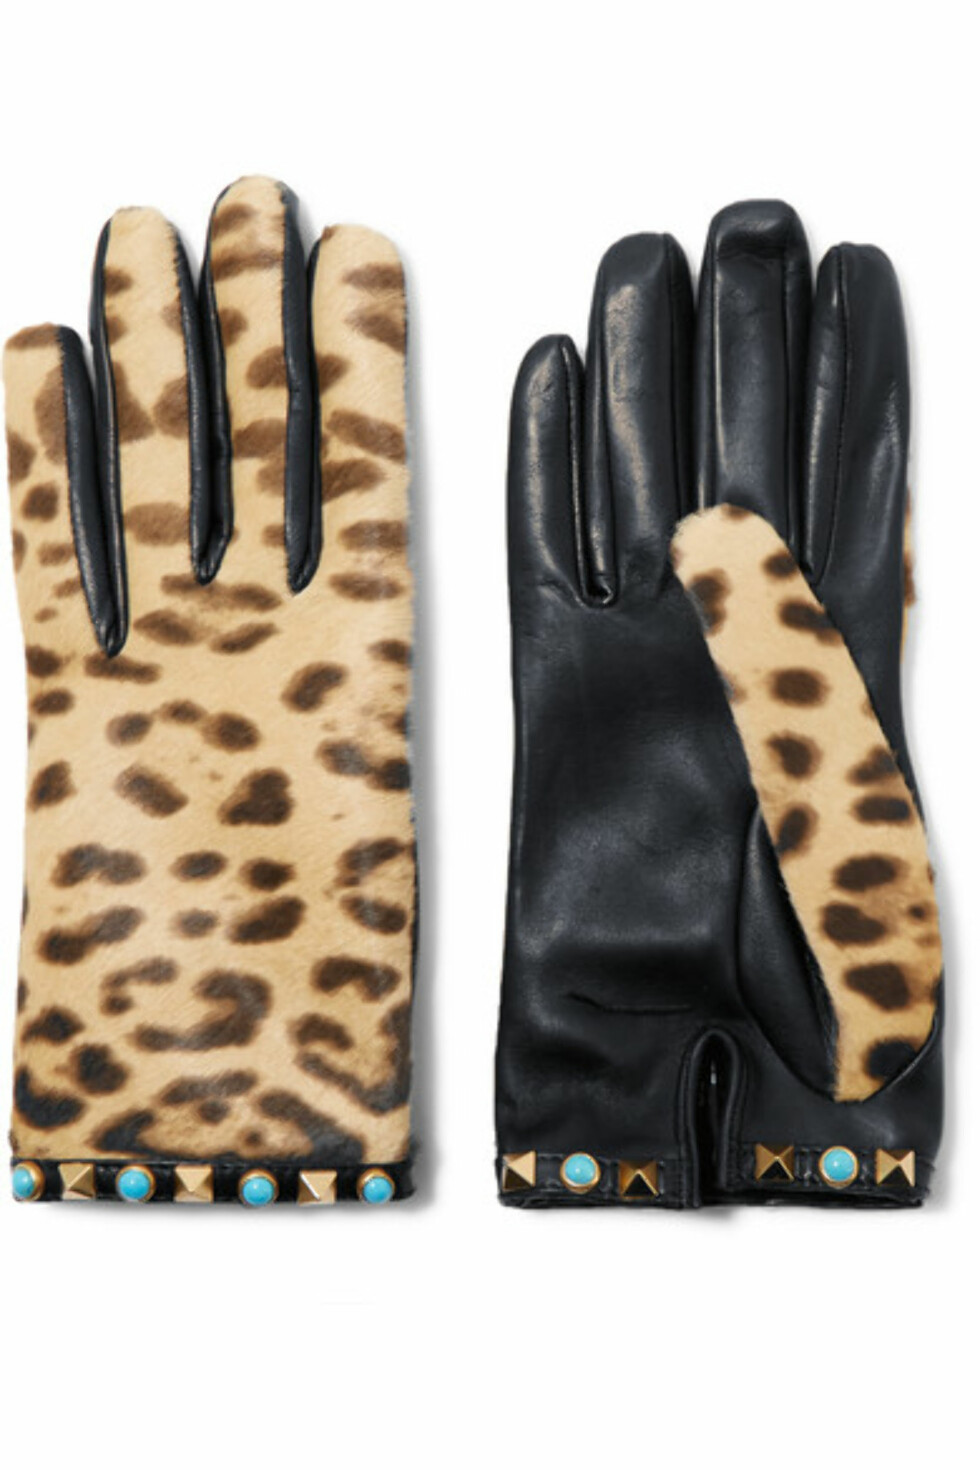 Skinnhansker fra Valentino via Net-a-porter.com | kr 3076 | https://www.net-a-porter.com/no/en/product/728596/valentino/embellished-leopard-print-calf-hair-and-leather-gloves